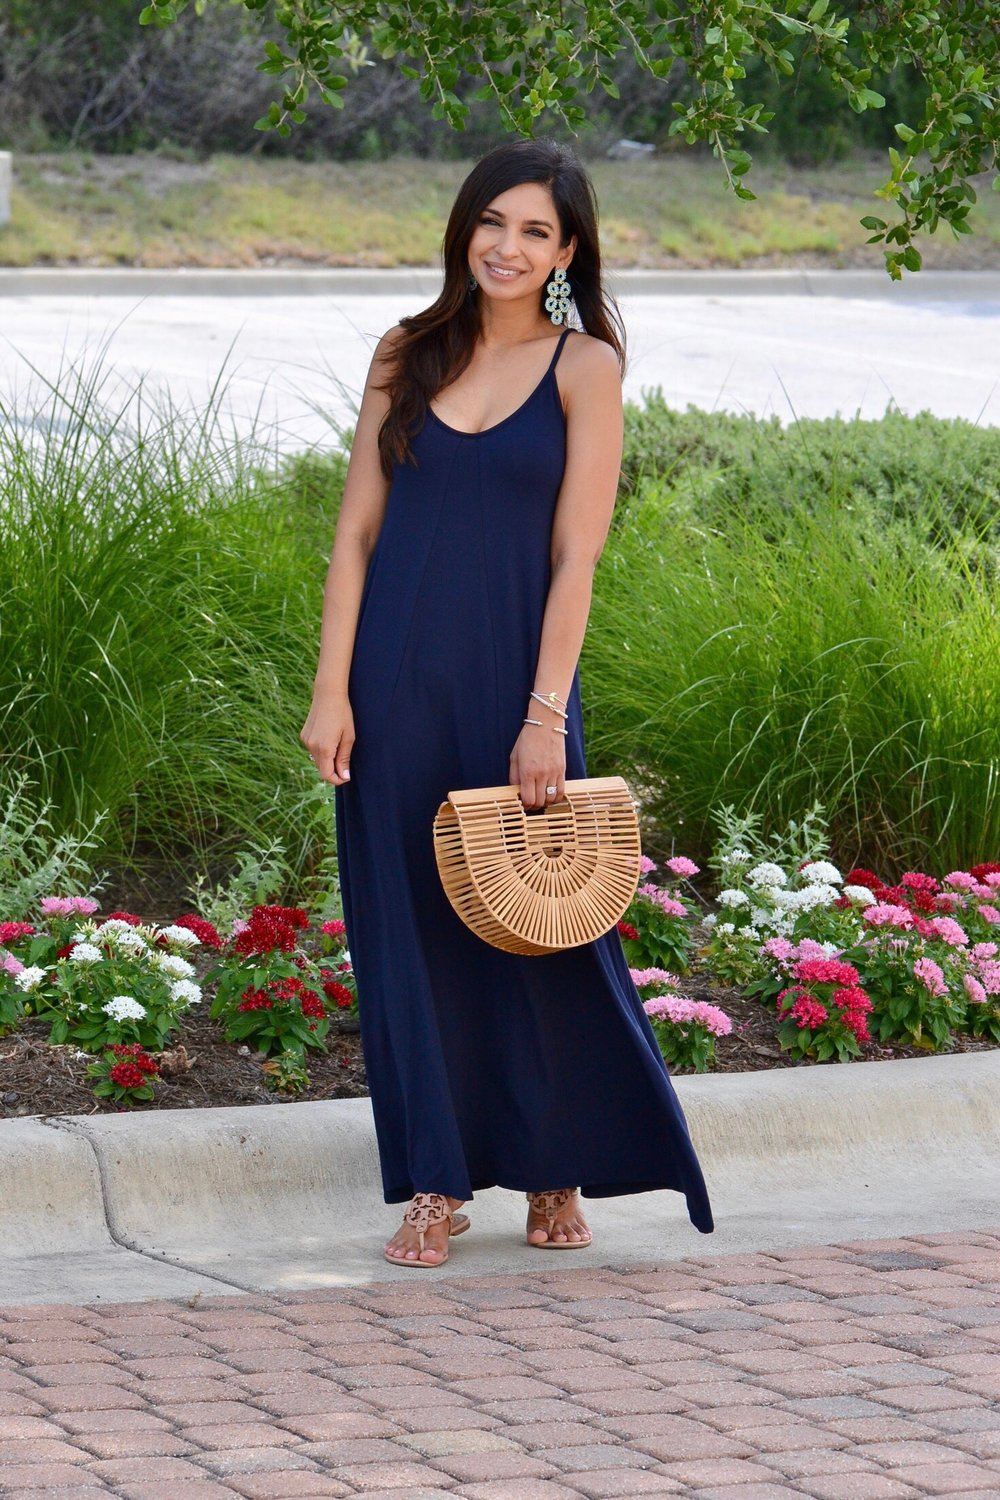 MAXI DRESS  |  STATEMENT EARRINGS  |  SANDALS  |  HANDBAG